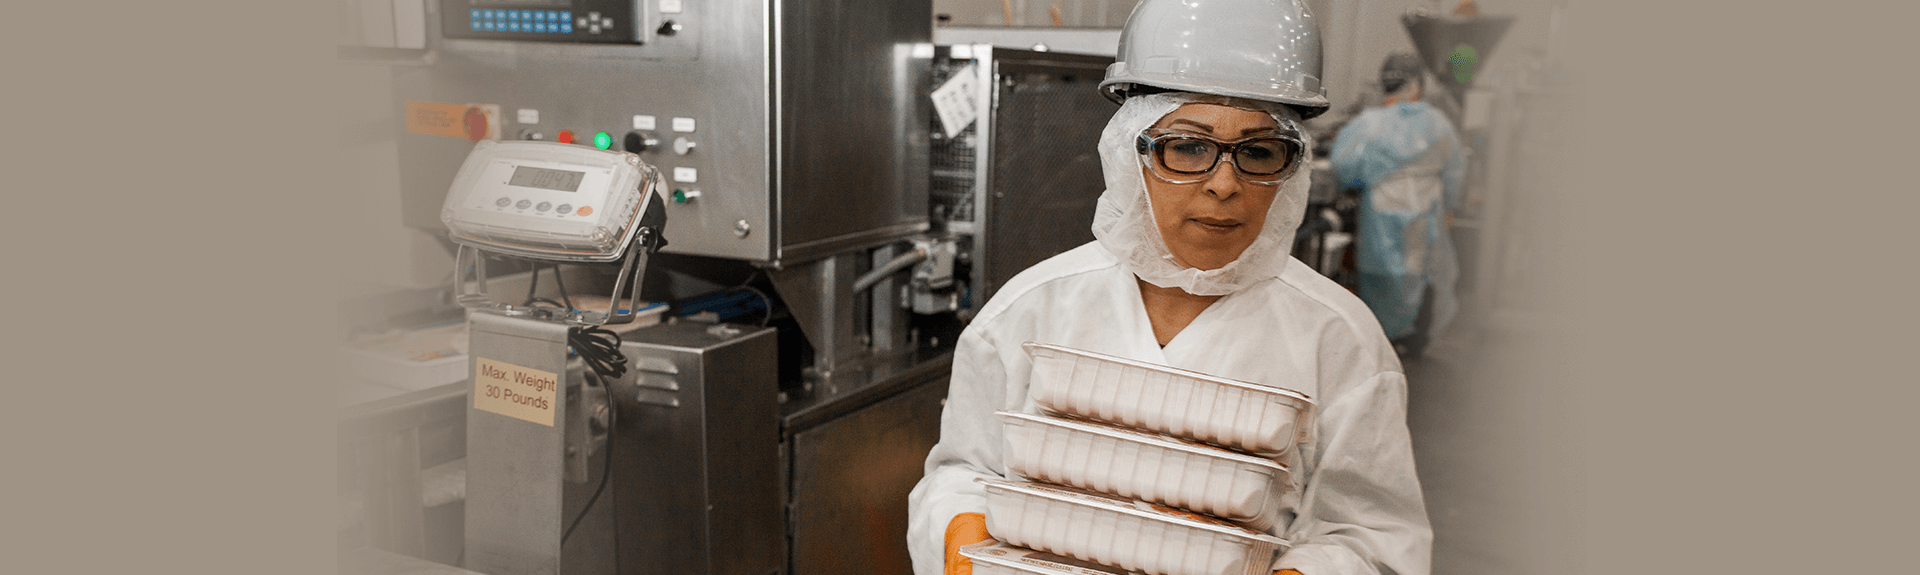 Image of a female employee working